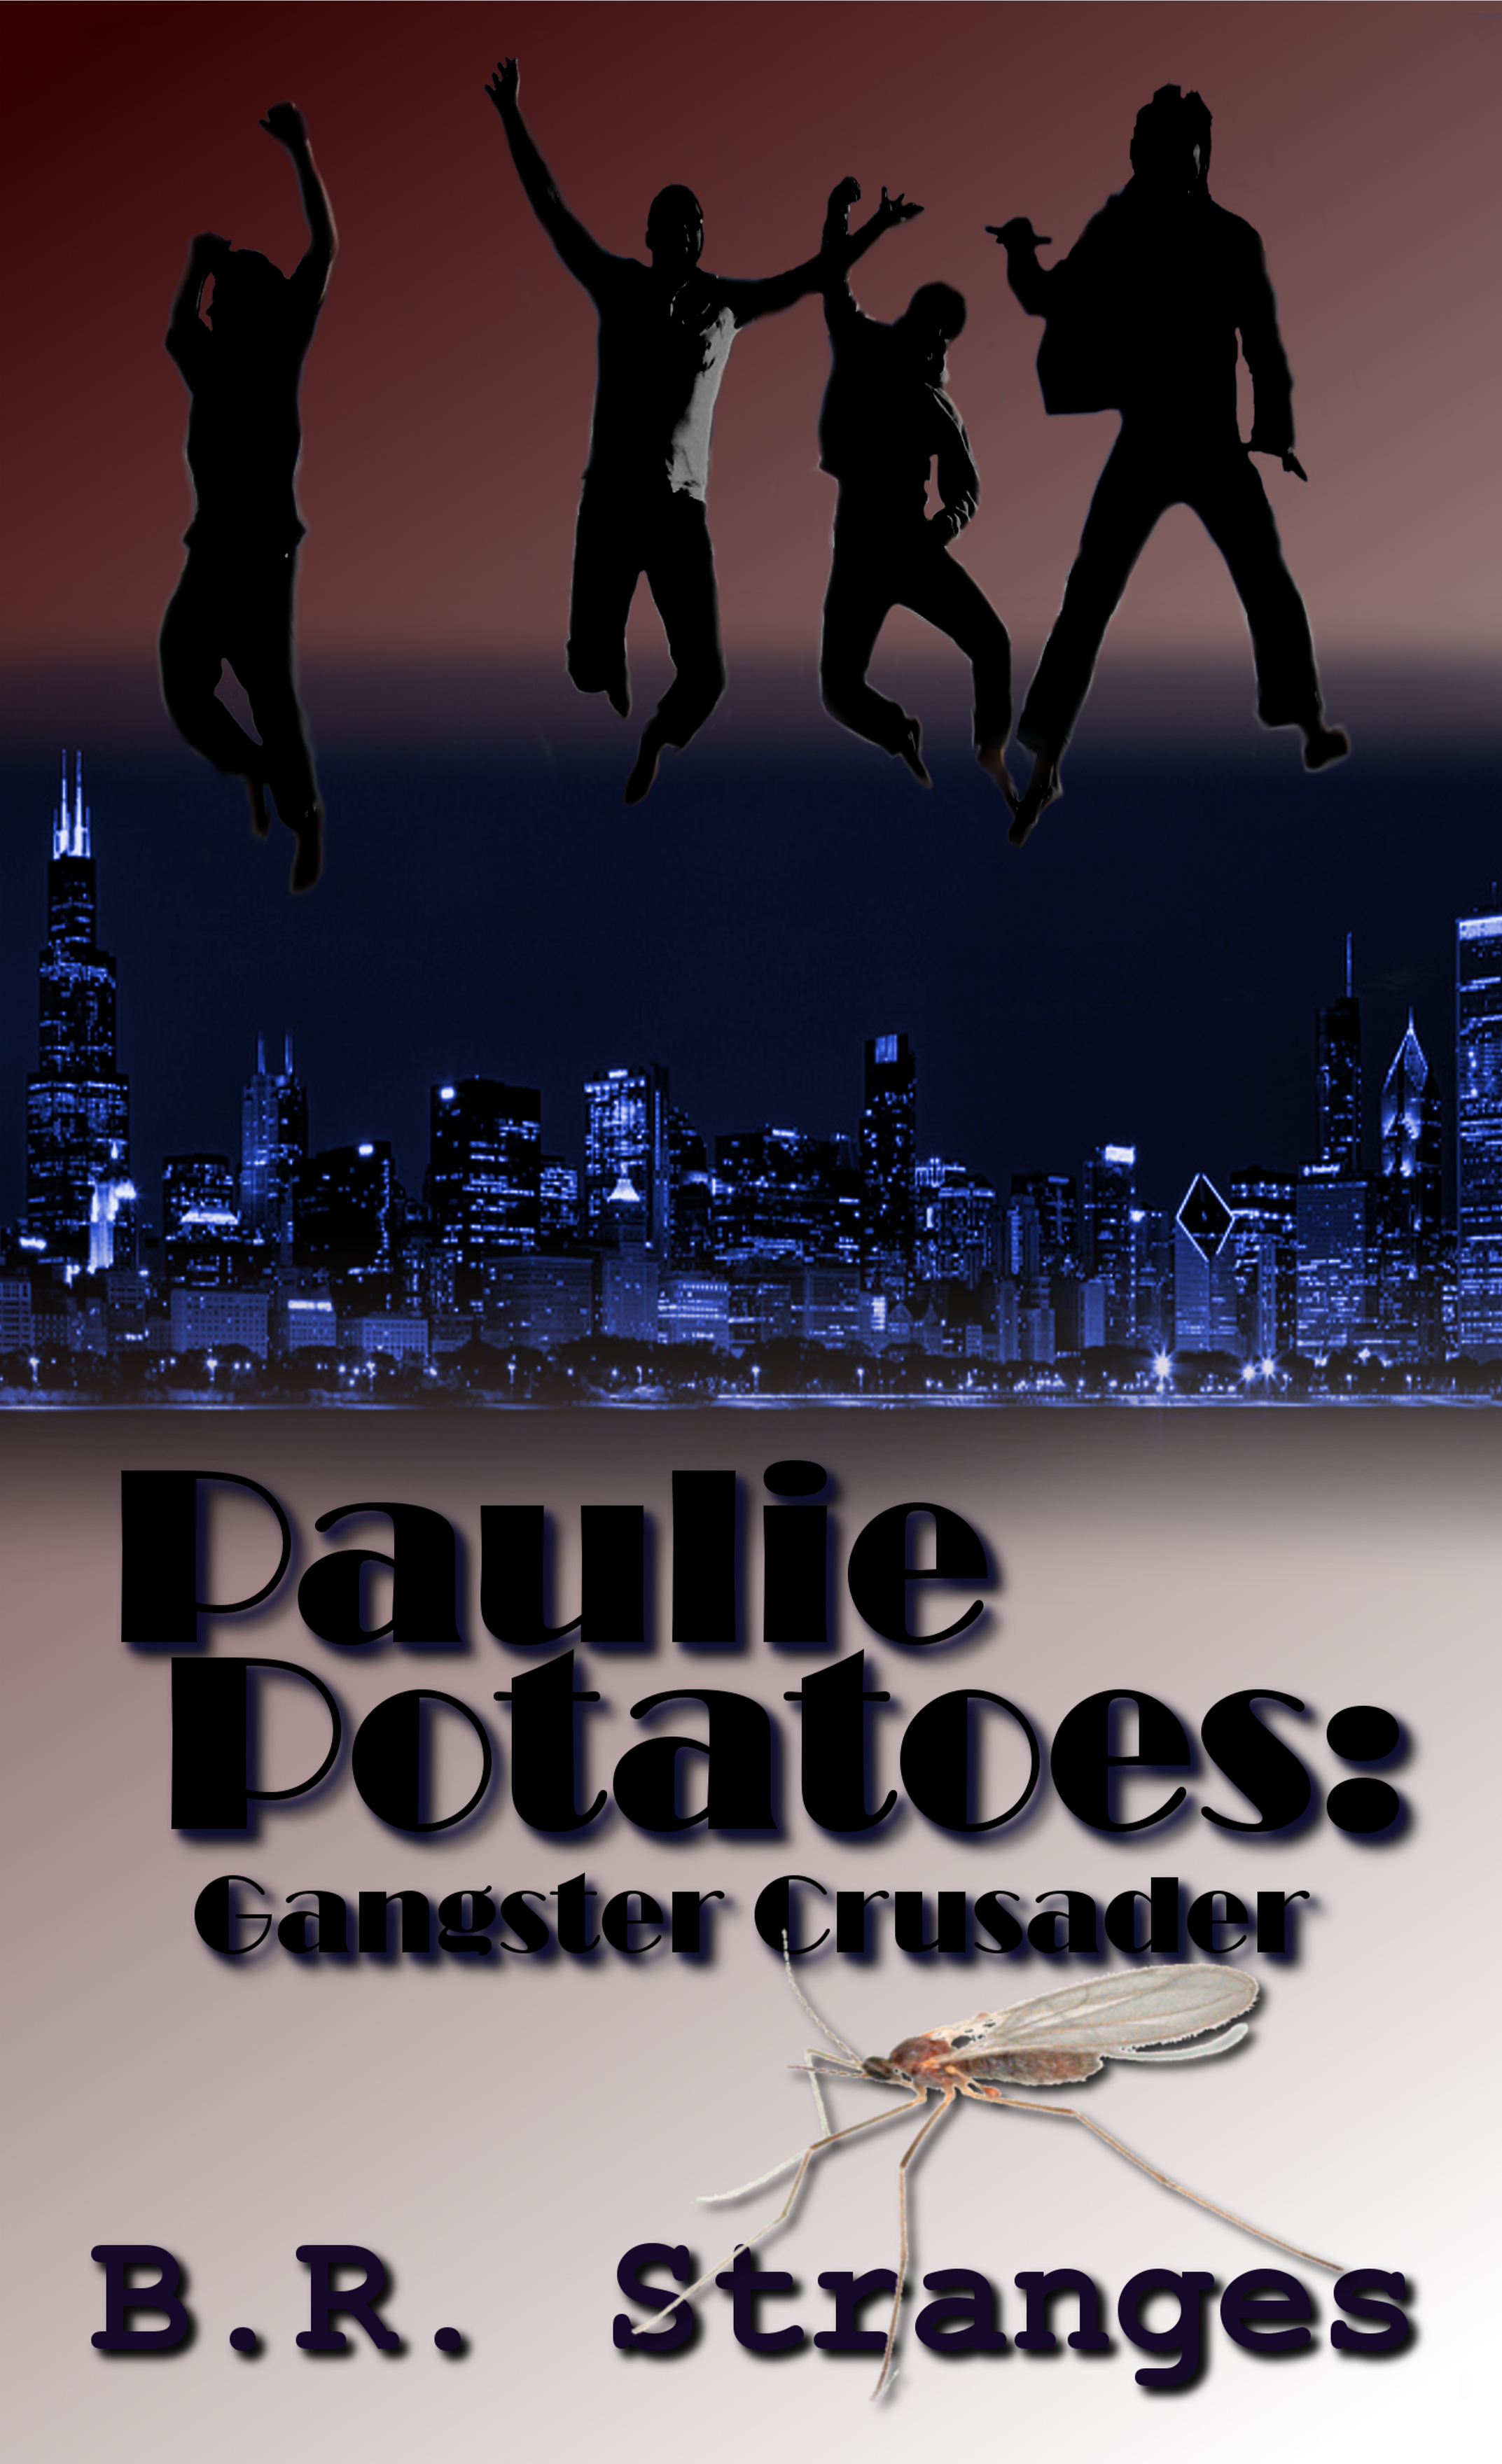 Paulie Potatoes: Gangster Crusader